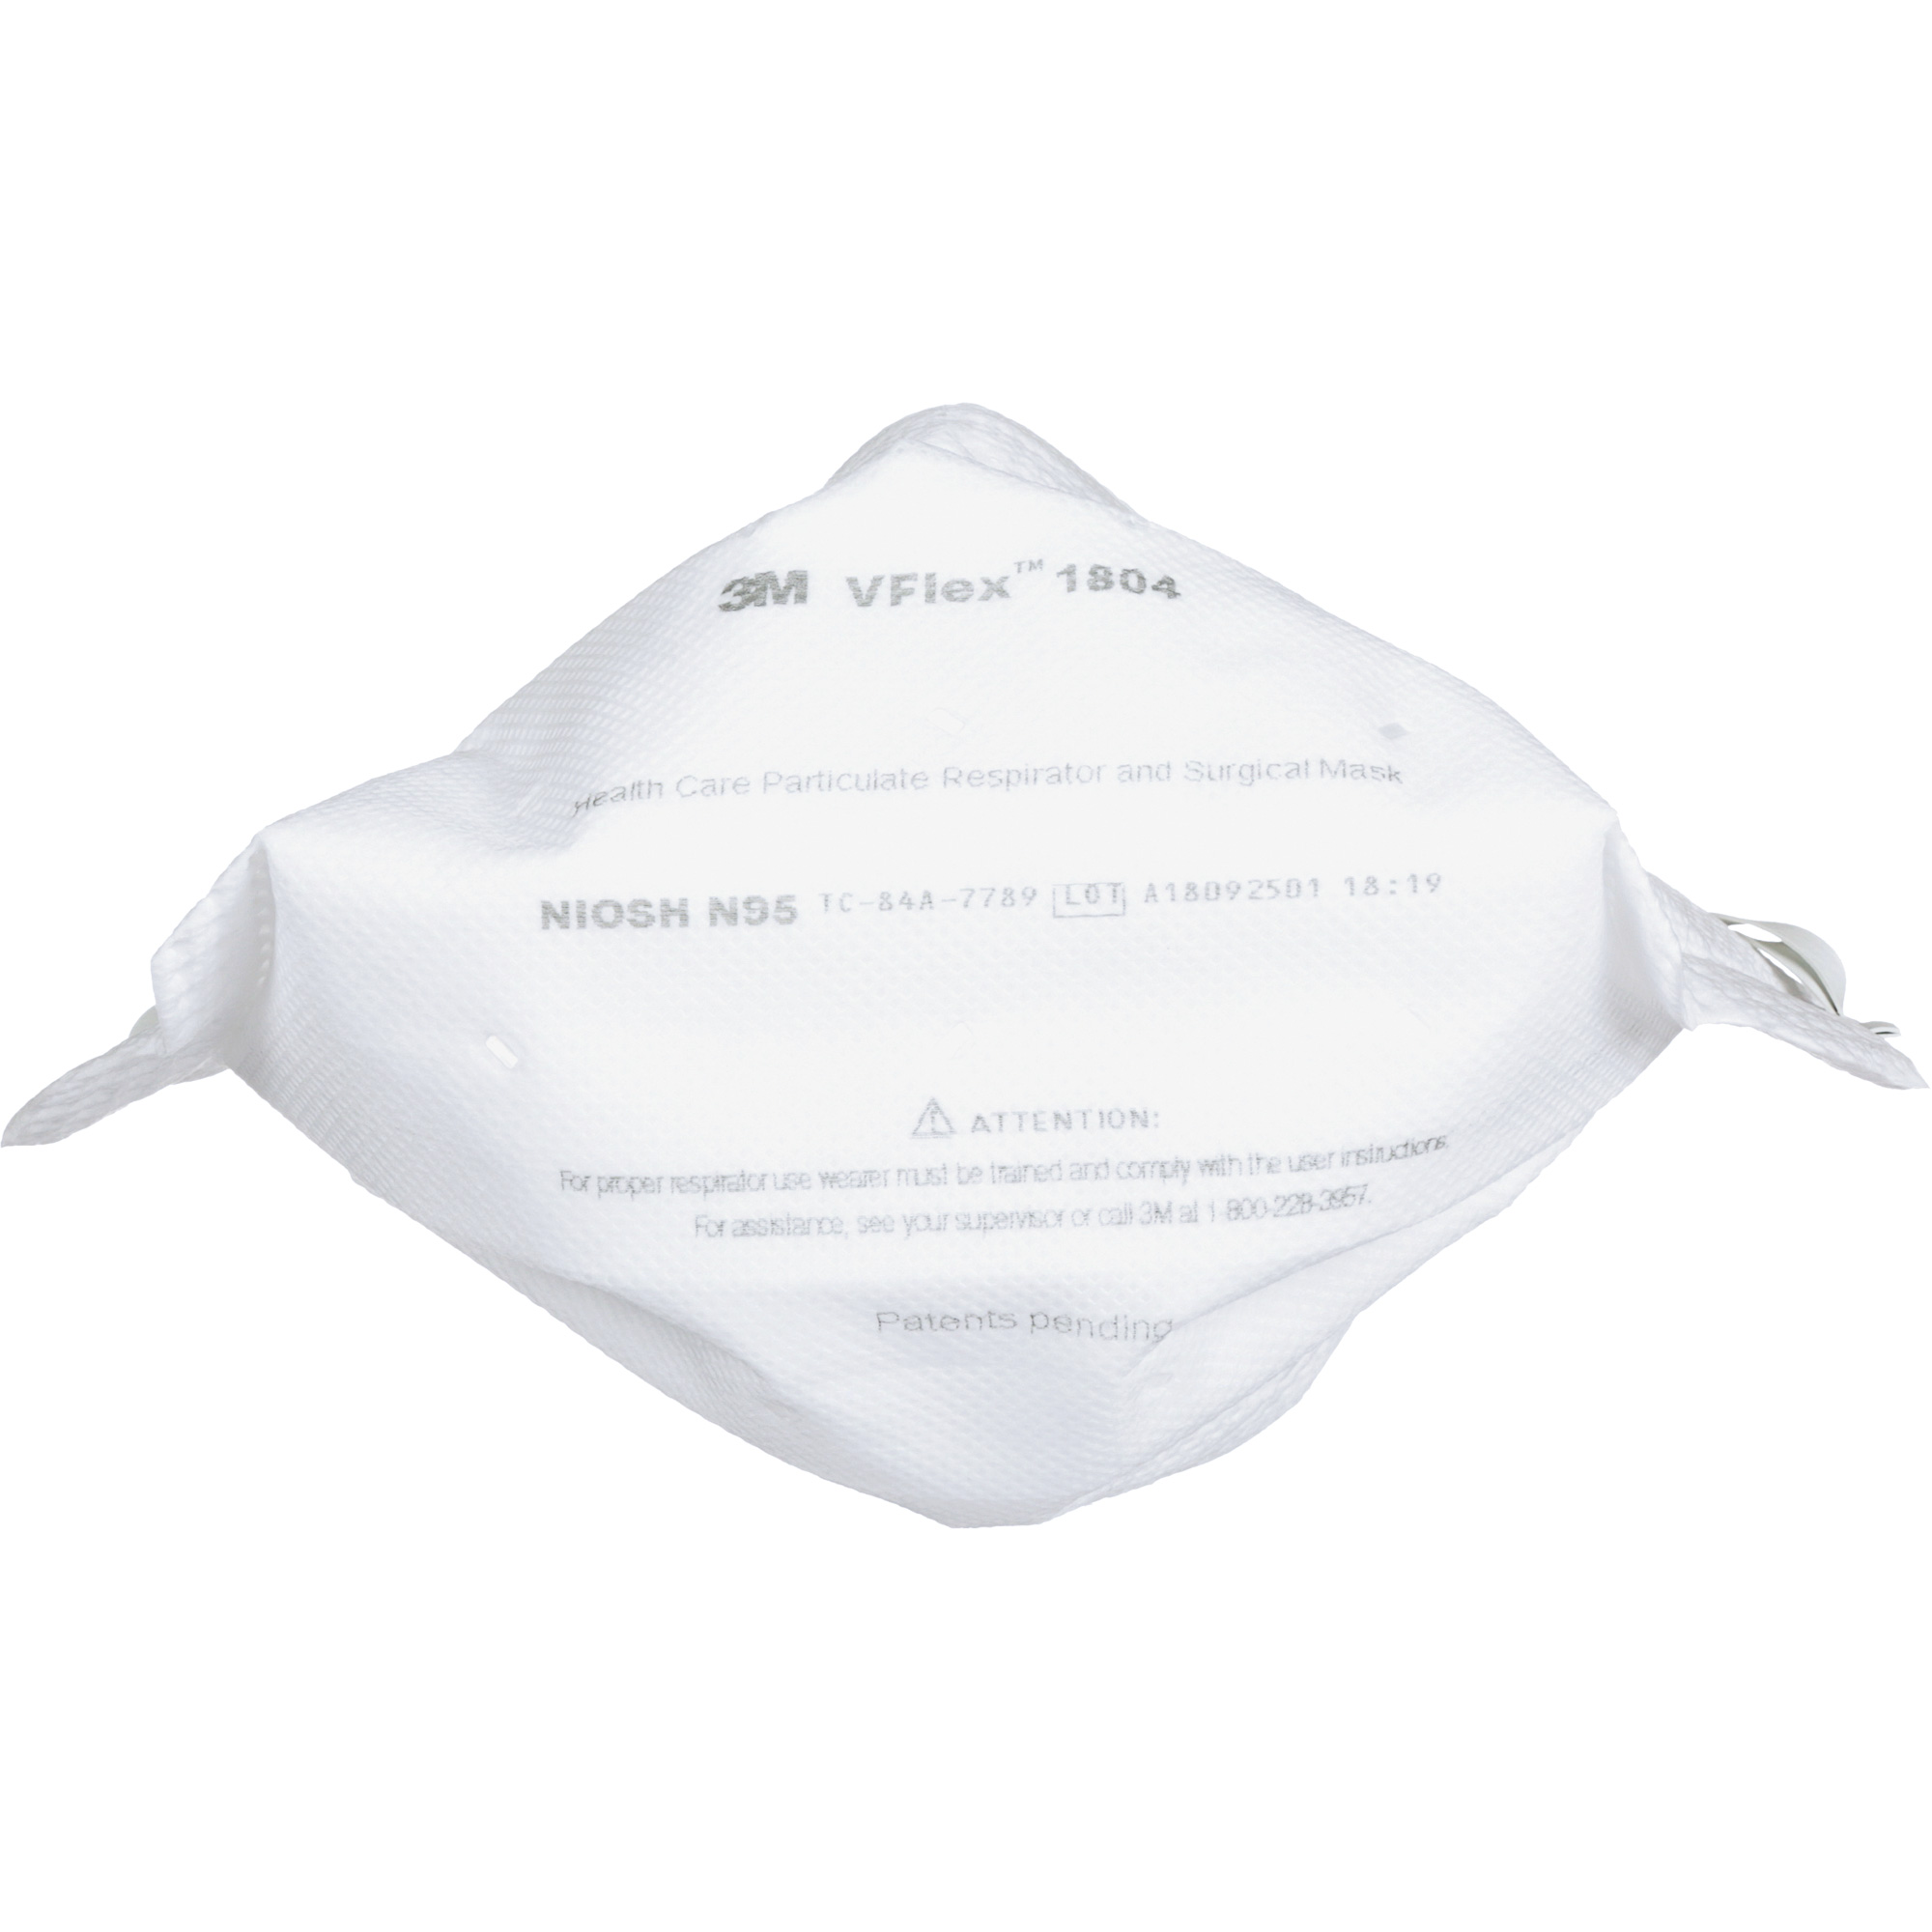 3m vflex healthcare particulate respirator and surgical mask